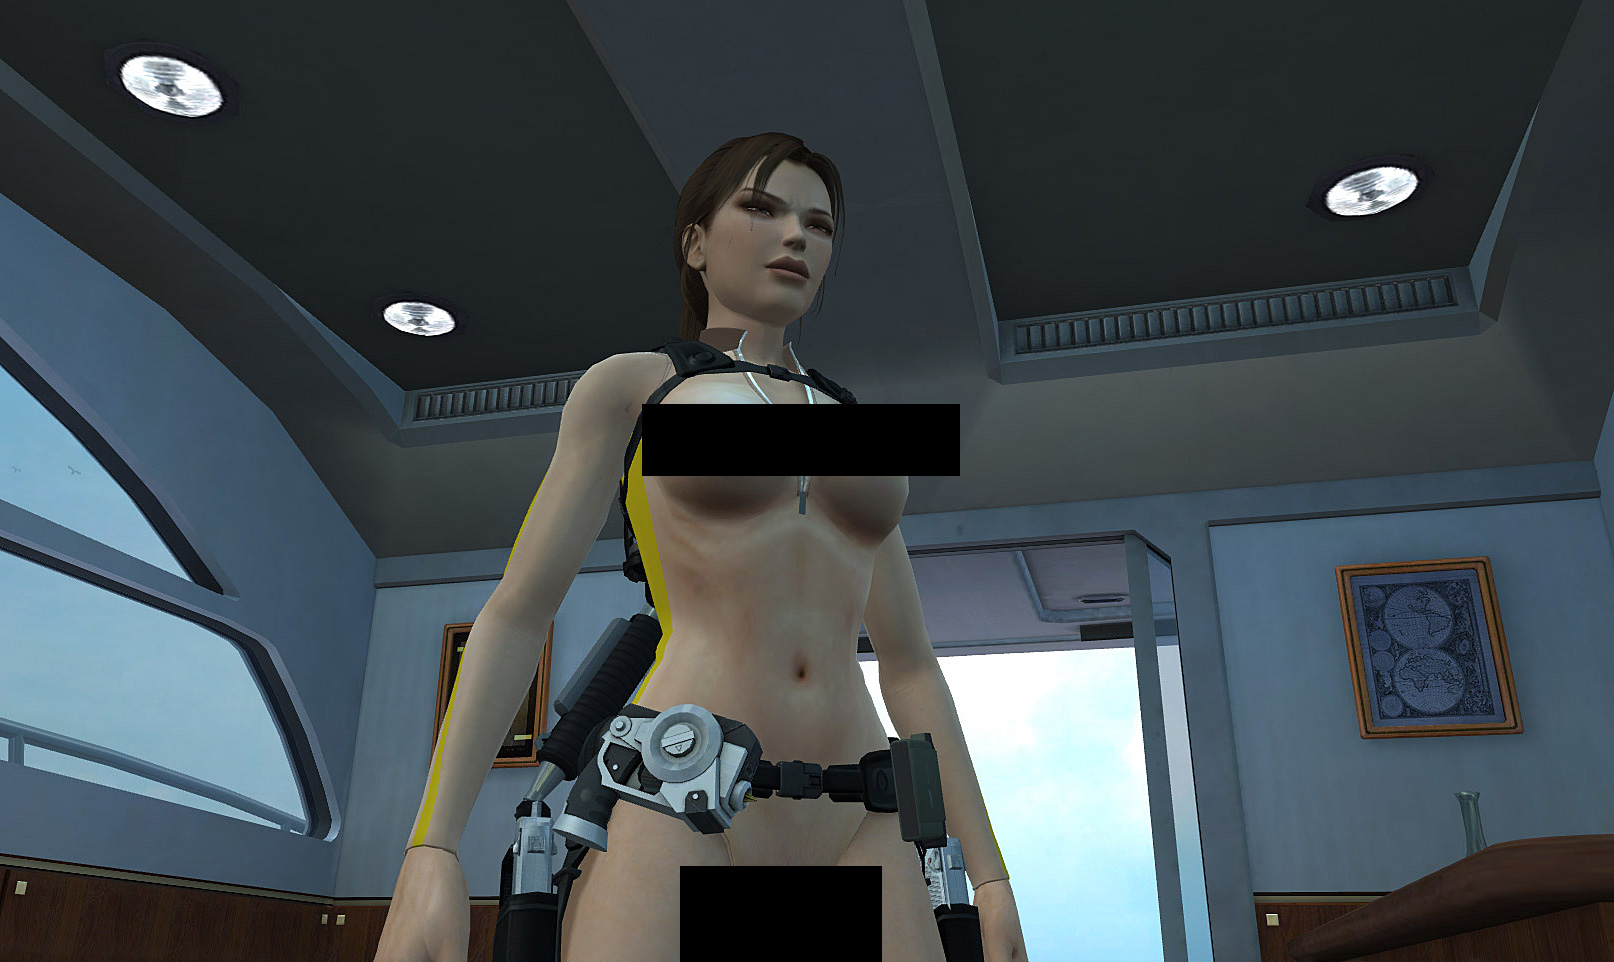 Tomb raider - underworld nude exploited clip